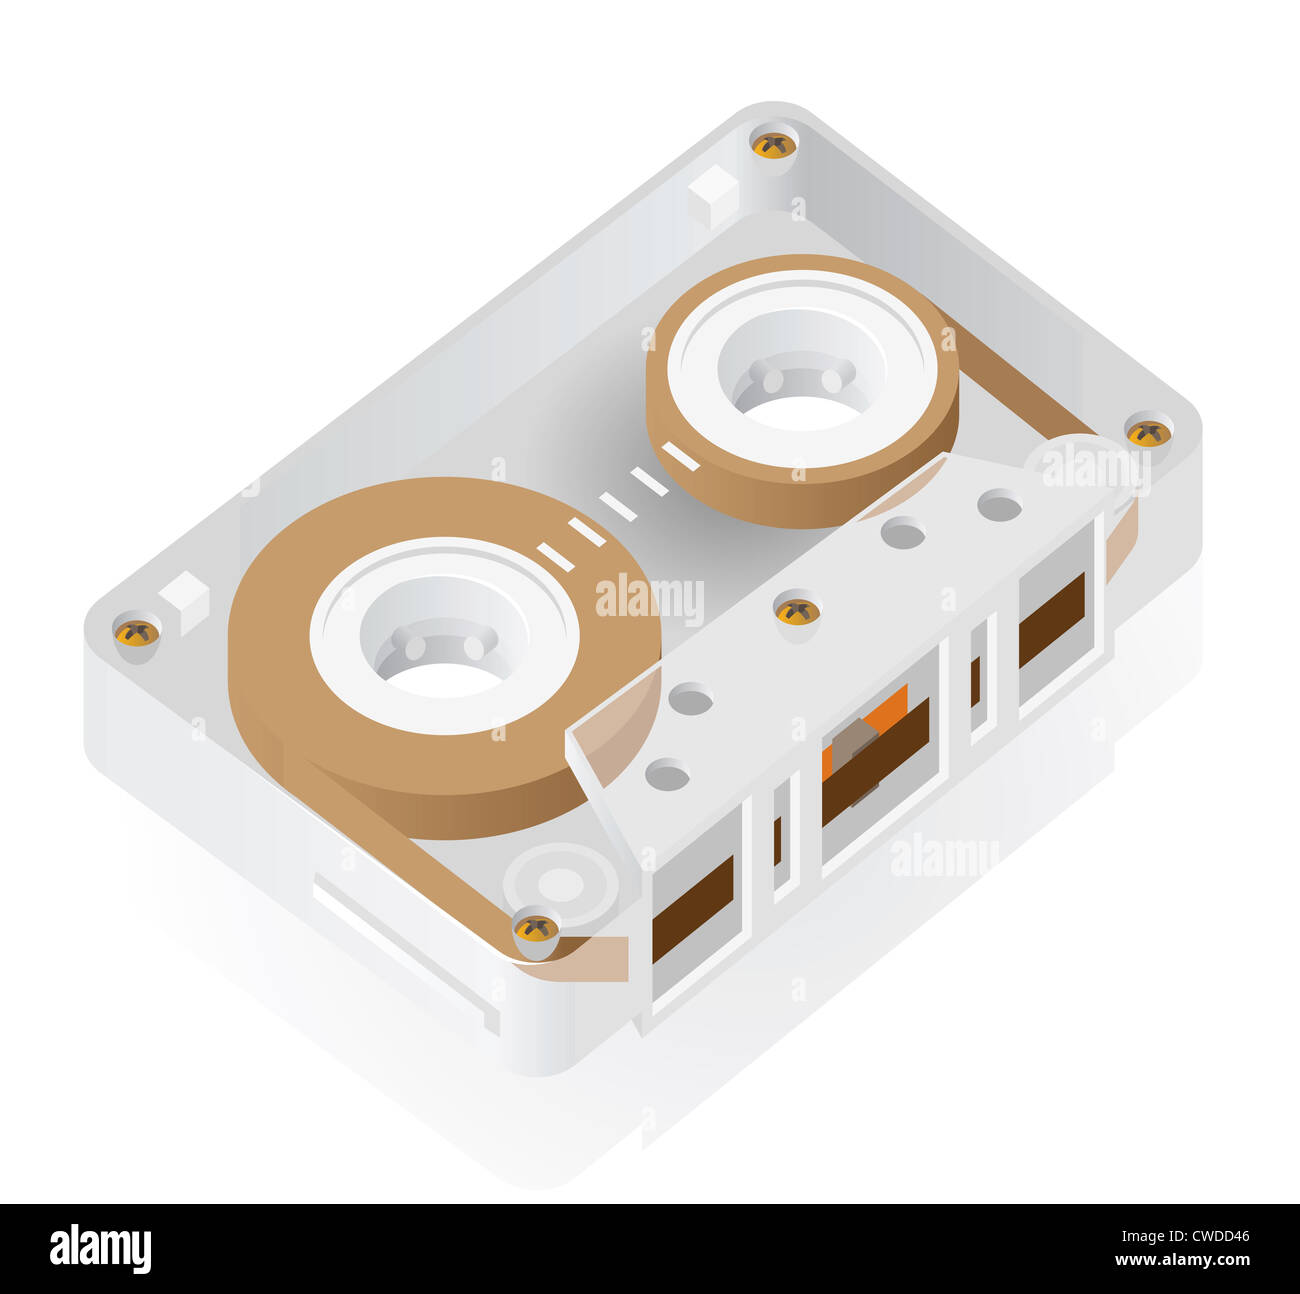 Magnetic audio compact cassette - Stock Image